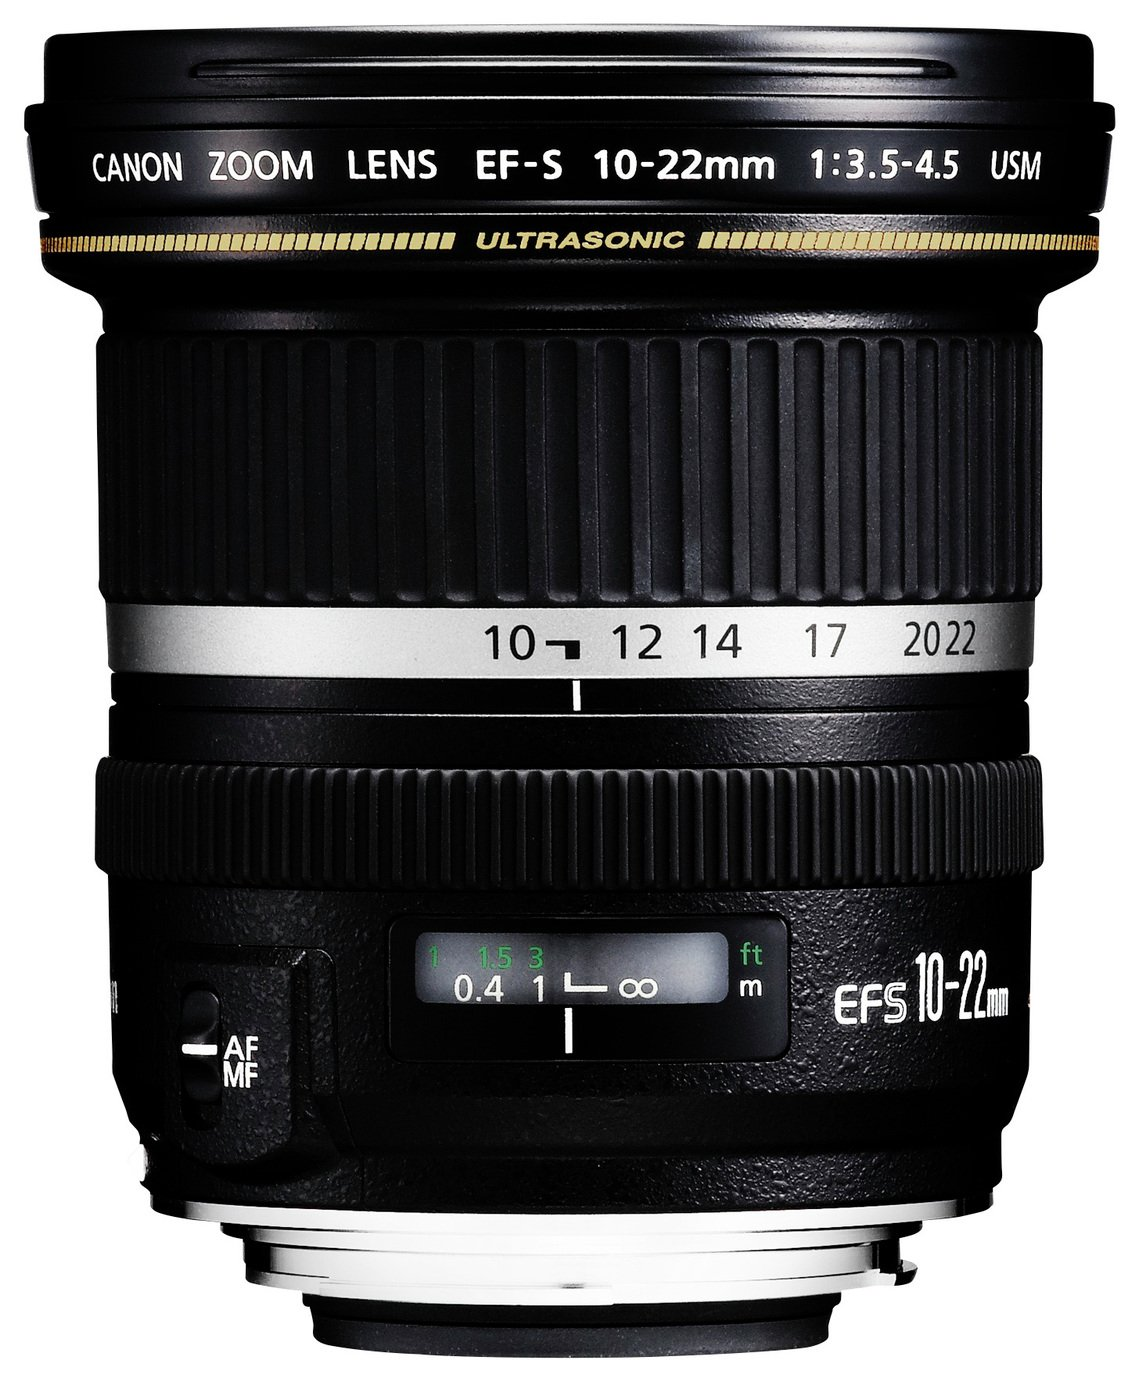 Image of Canon 10-22mm f/3.5 - 4.5 IS USM EF-s Lens